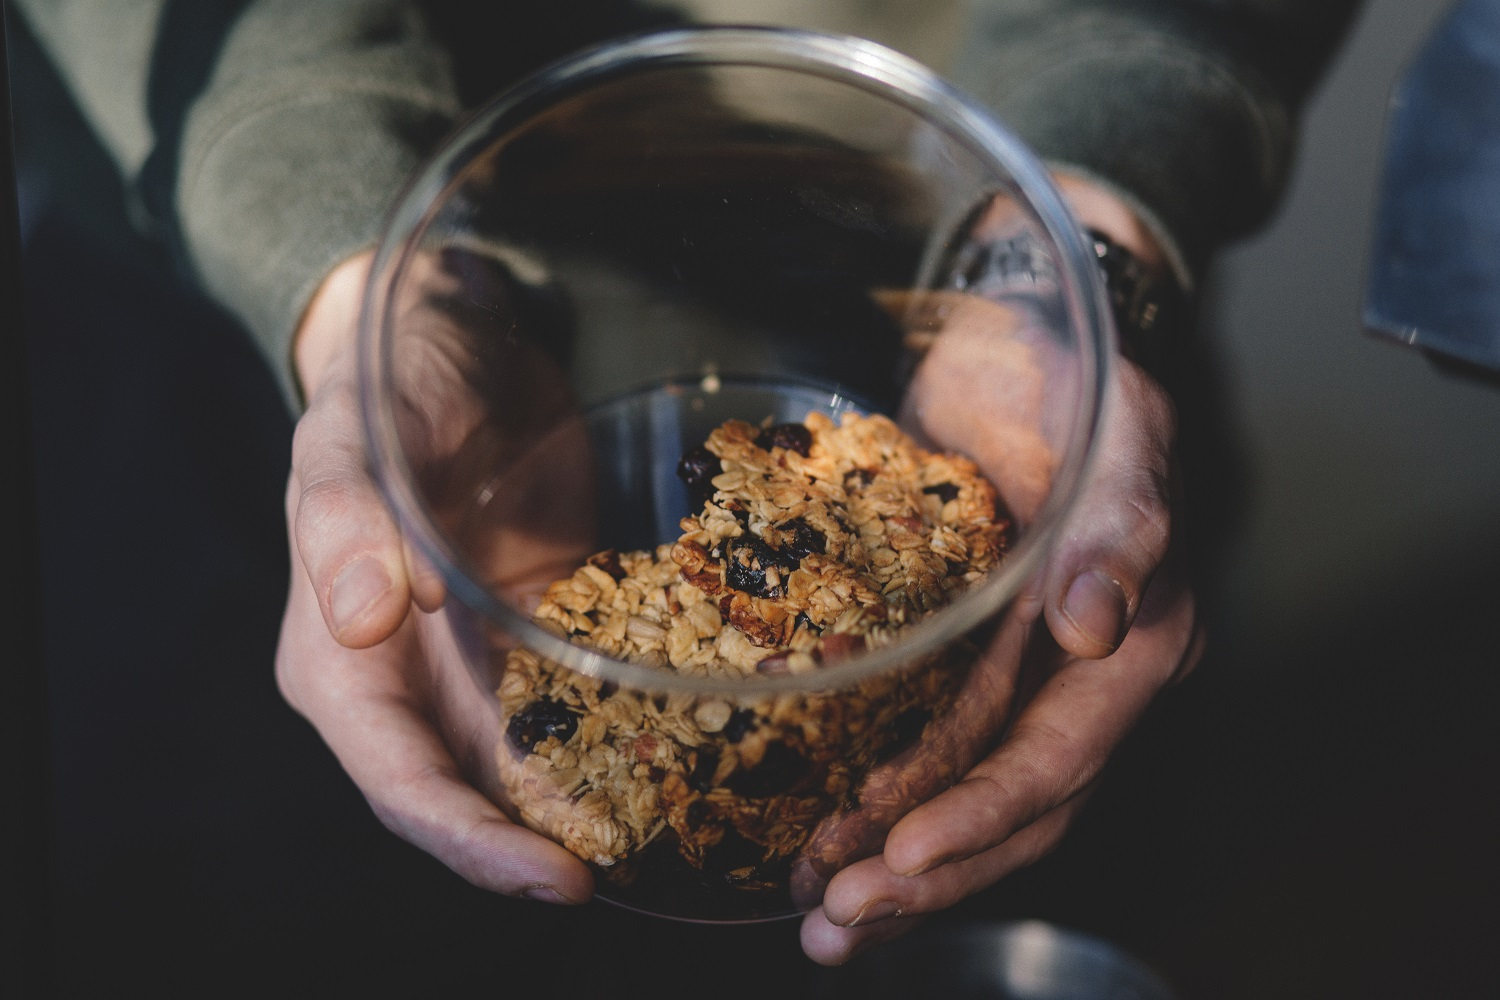 Image of a pair or hands holding a clear glass cookie jar with what look like oatmeal and raisin cookies inside. Shot taken from above looking down into the jar at an angle.